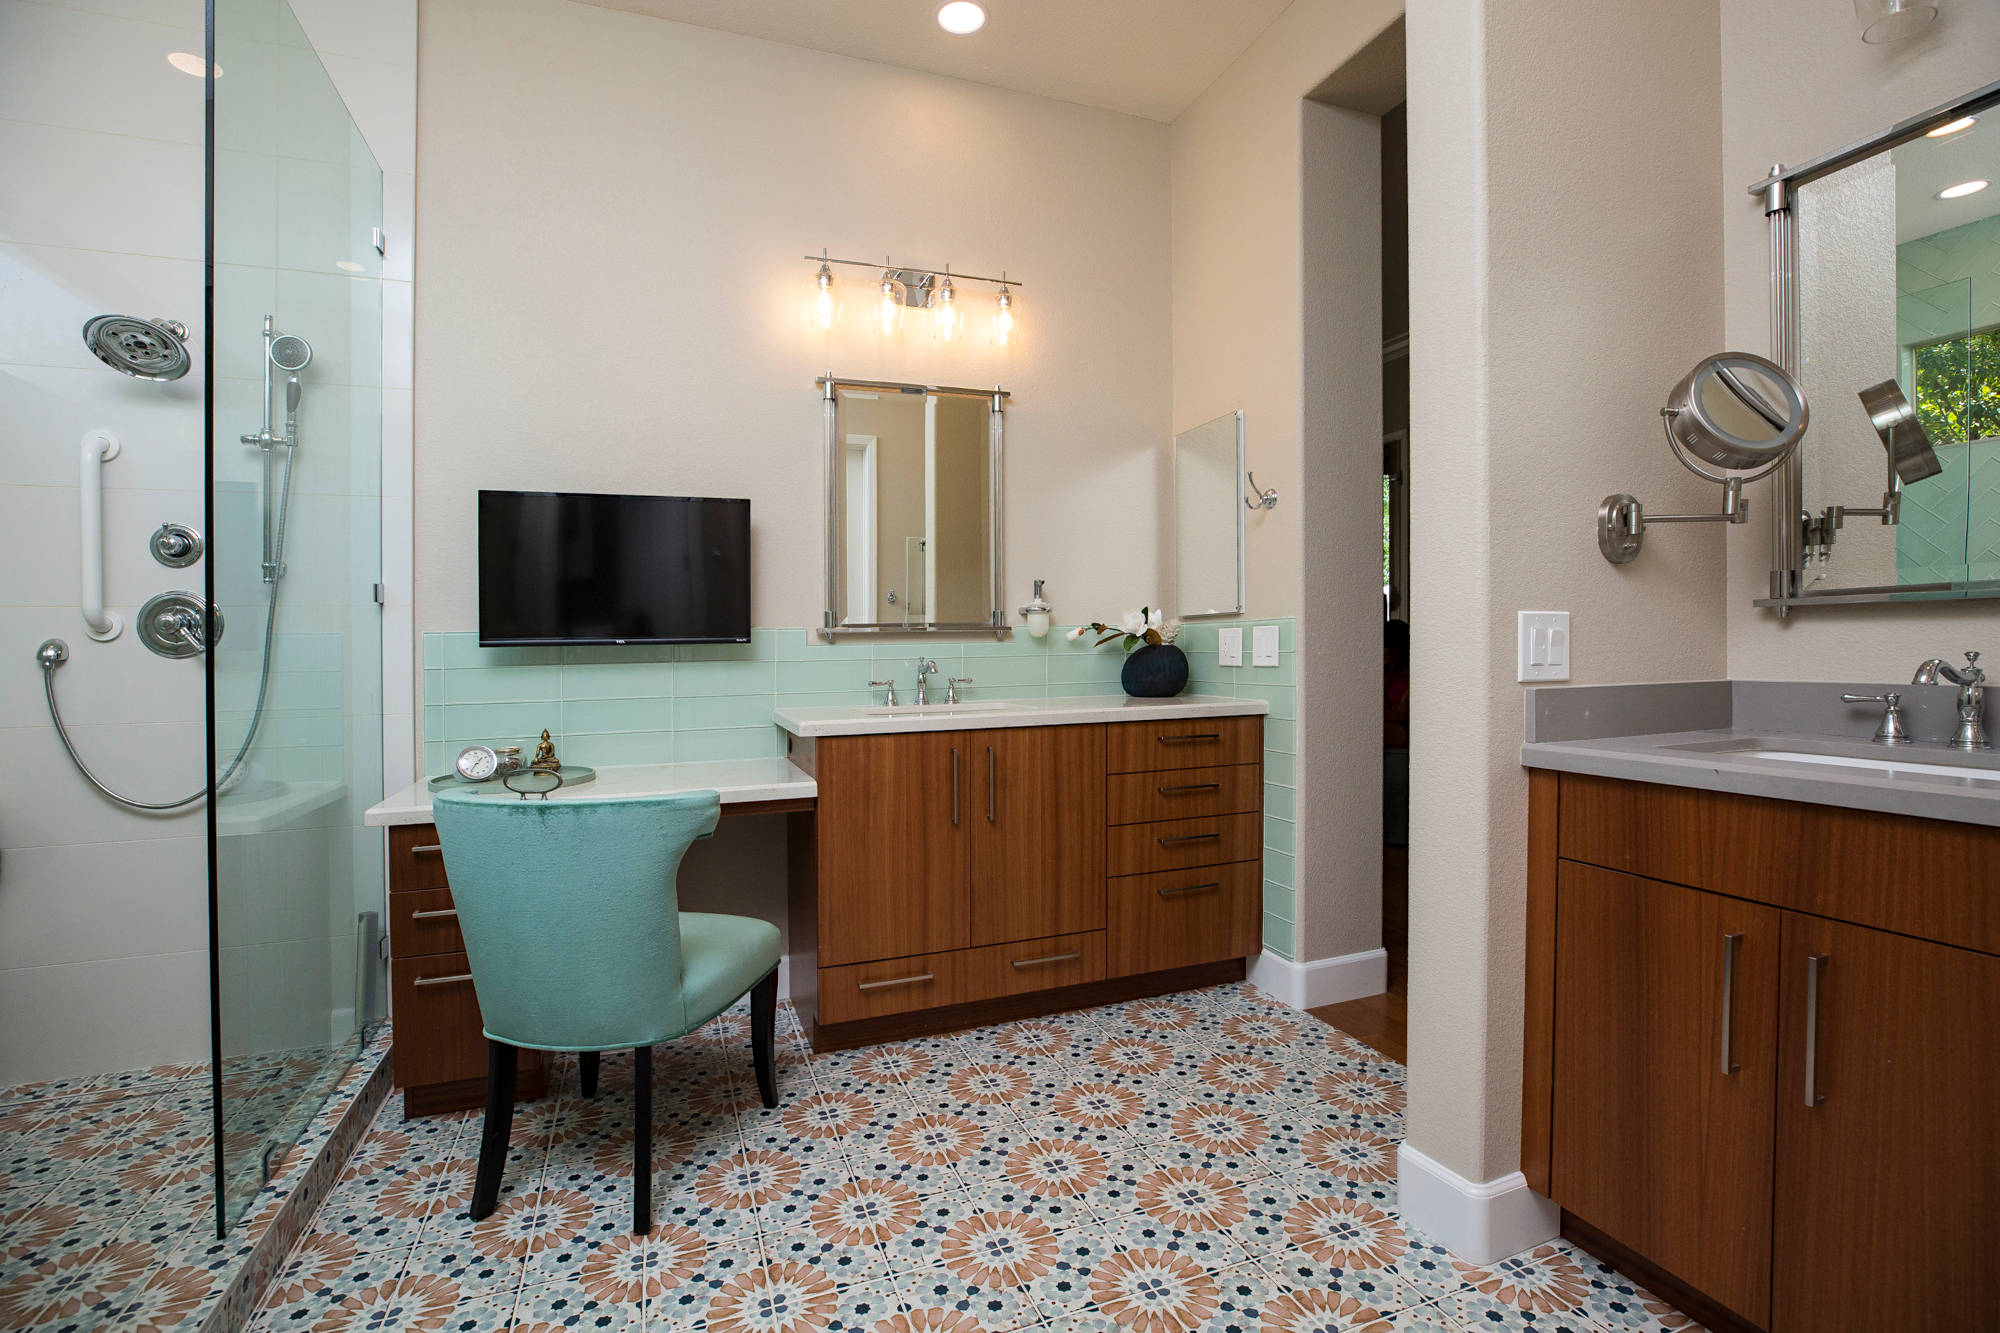 Spa inspired master bath with multi colored floor tile and large walk-in shower.